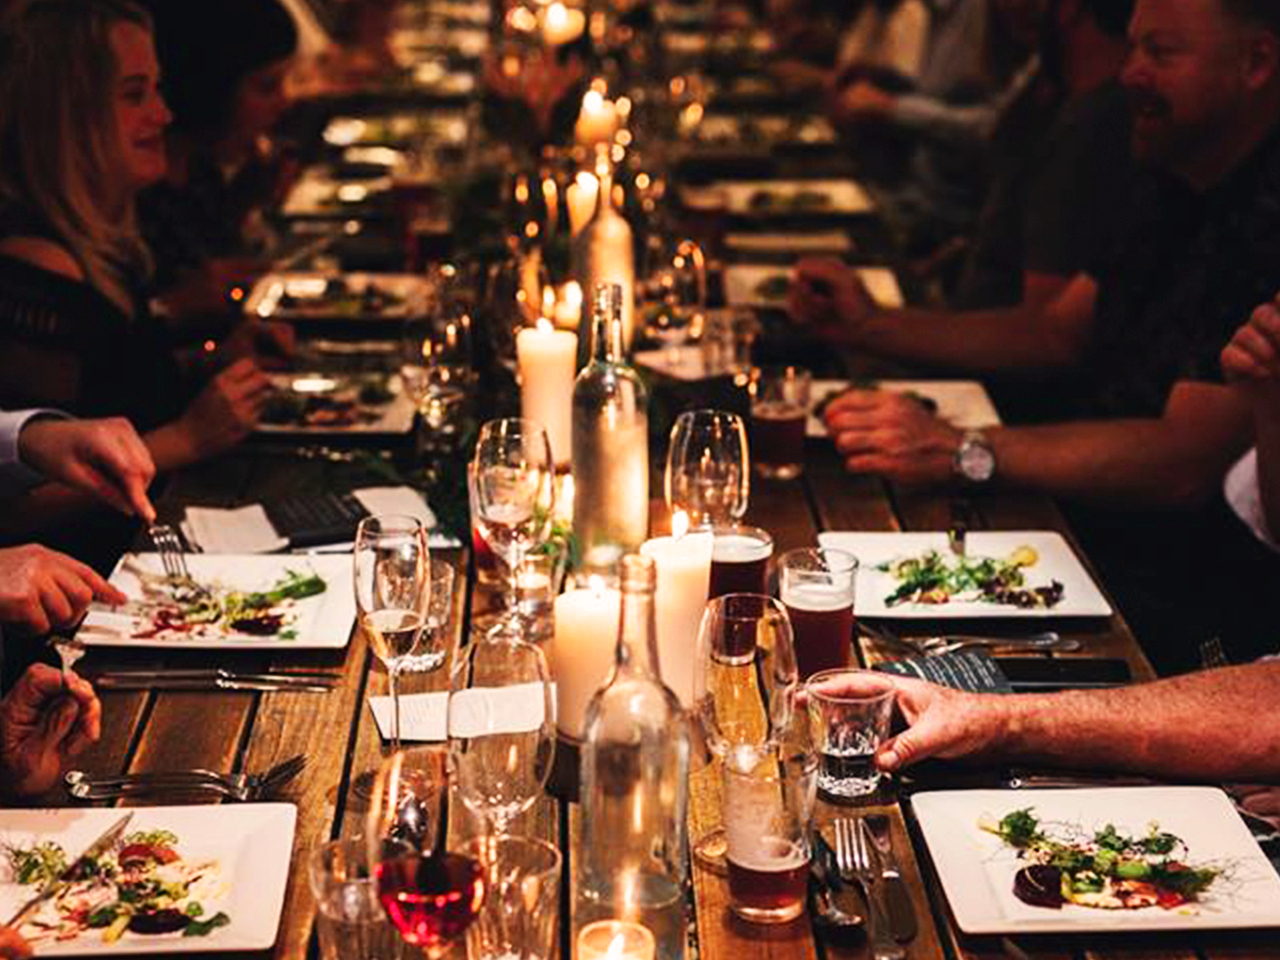 Guests Enjoying Their Food With Drinks on The Table And Candle Lights